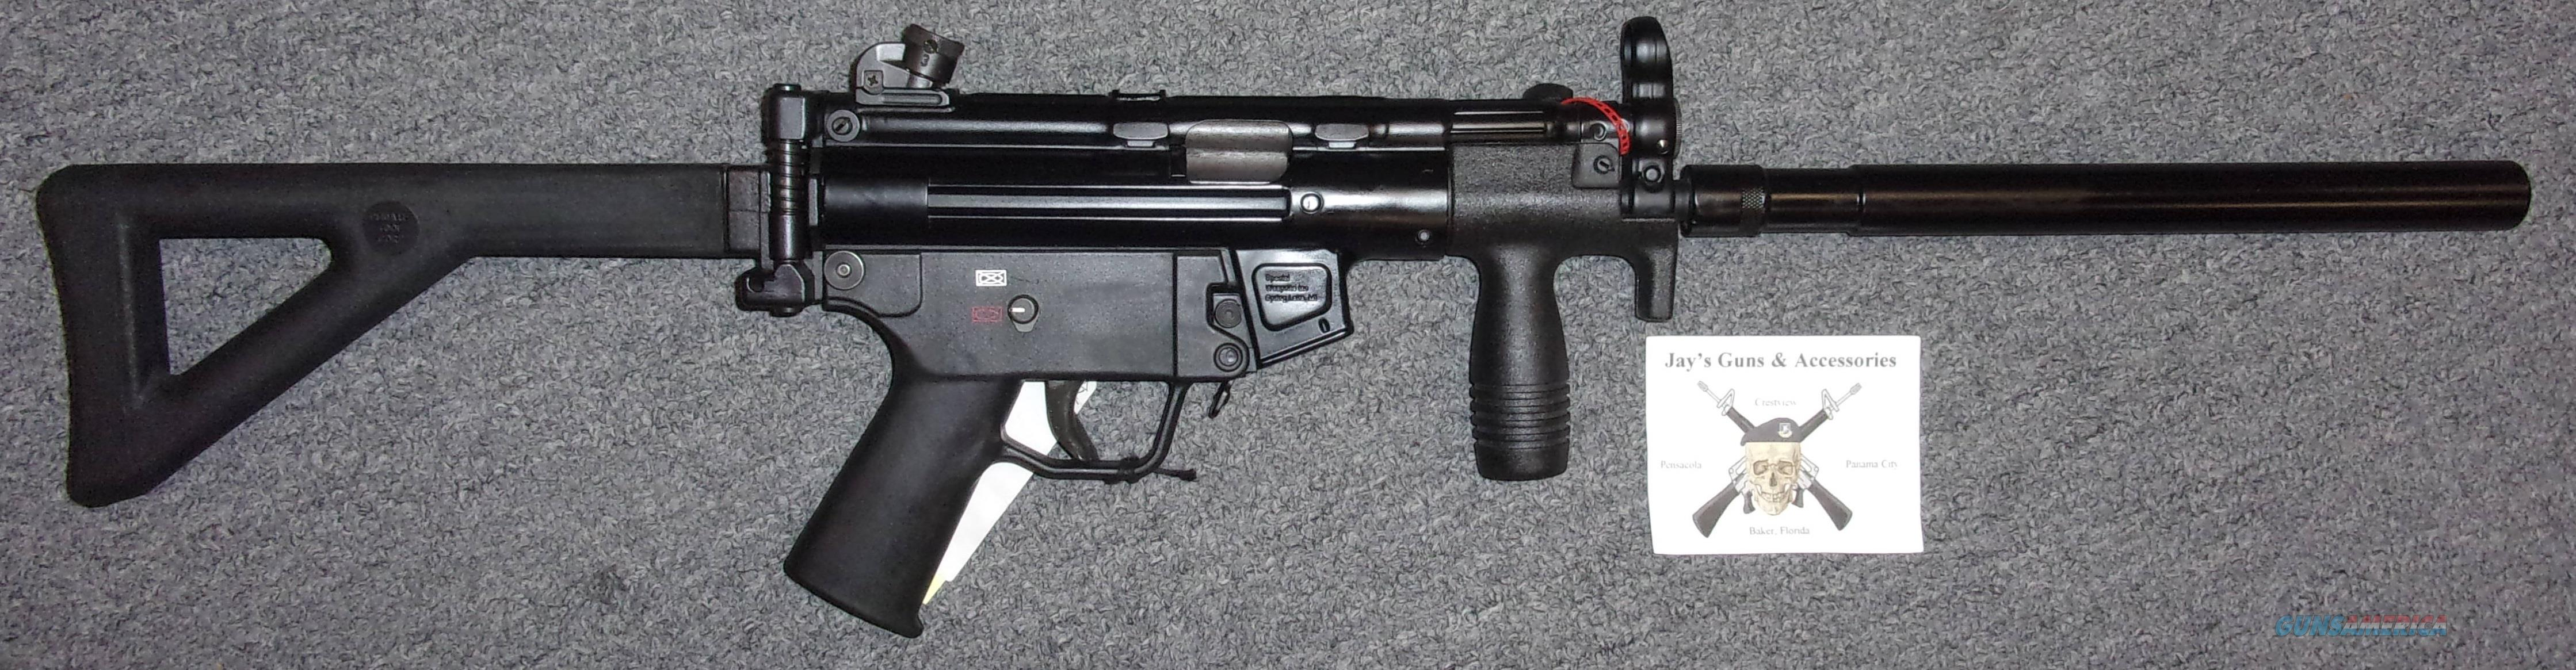 Special Weapons SW94K w/Fake Suppressor (HK SP5K Clone)